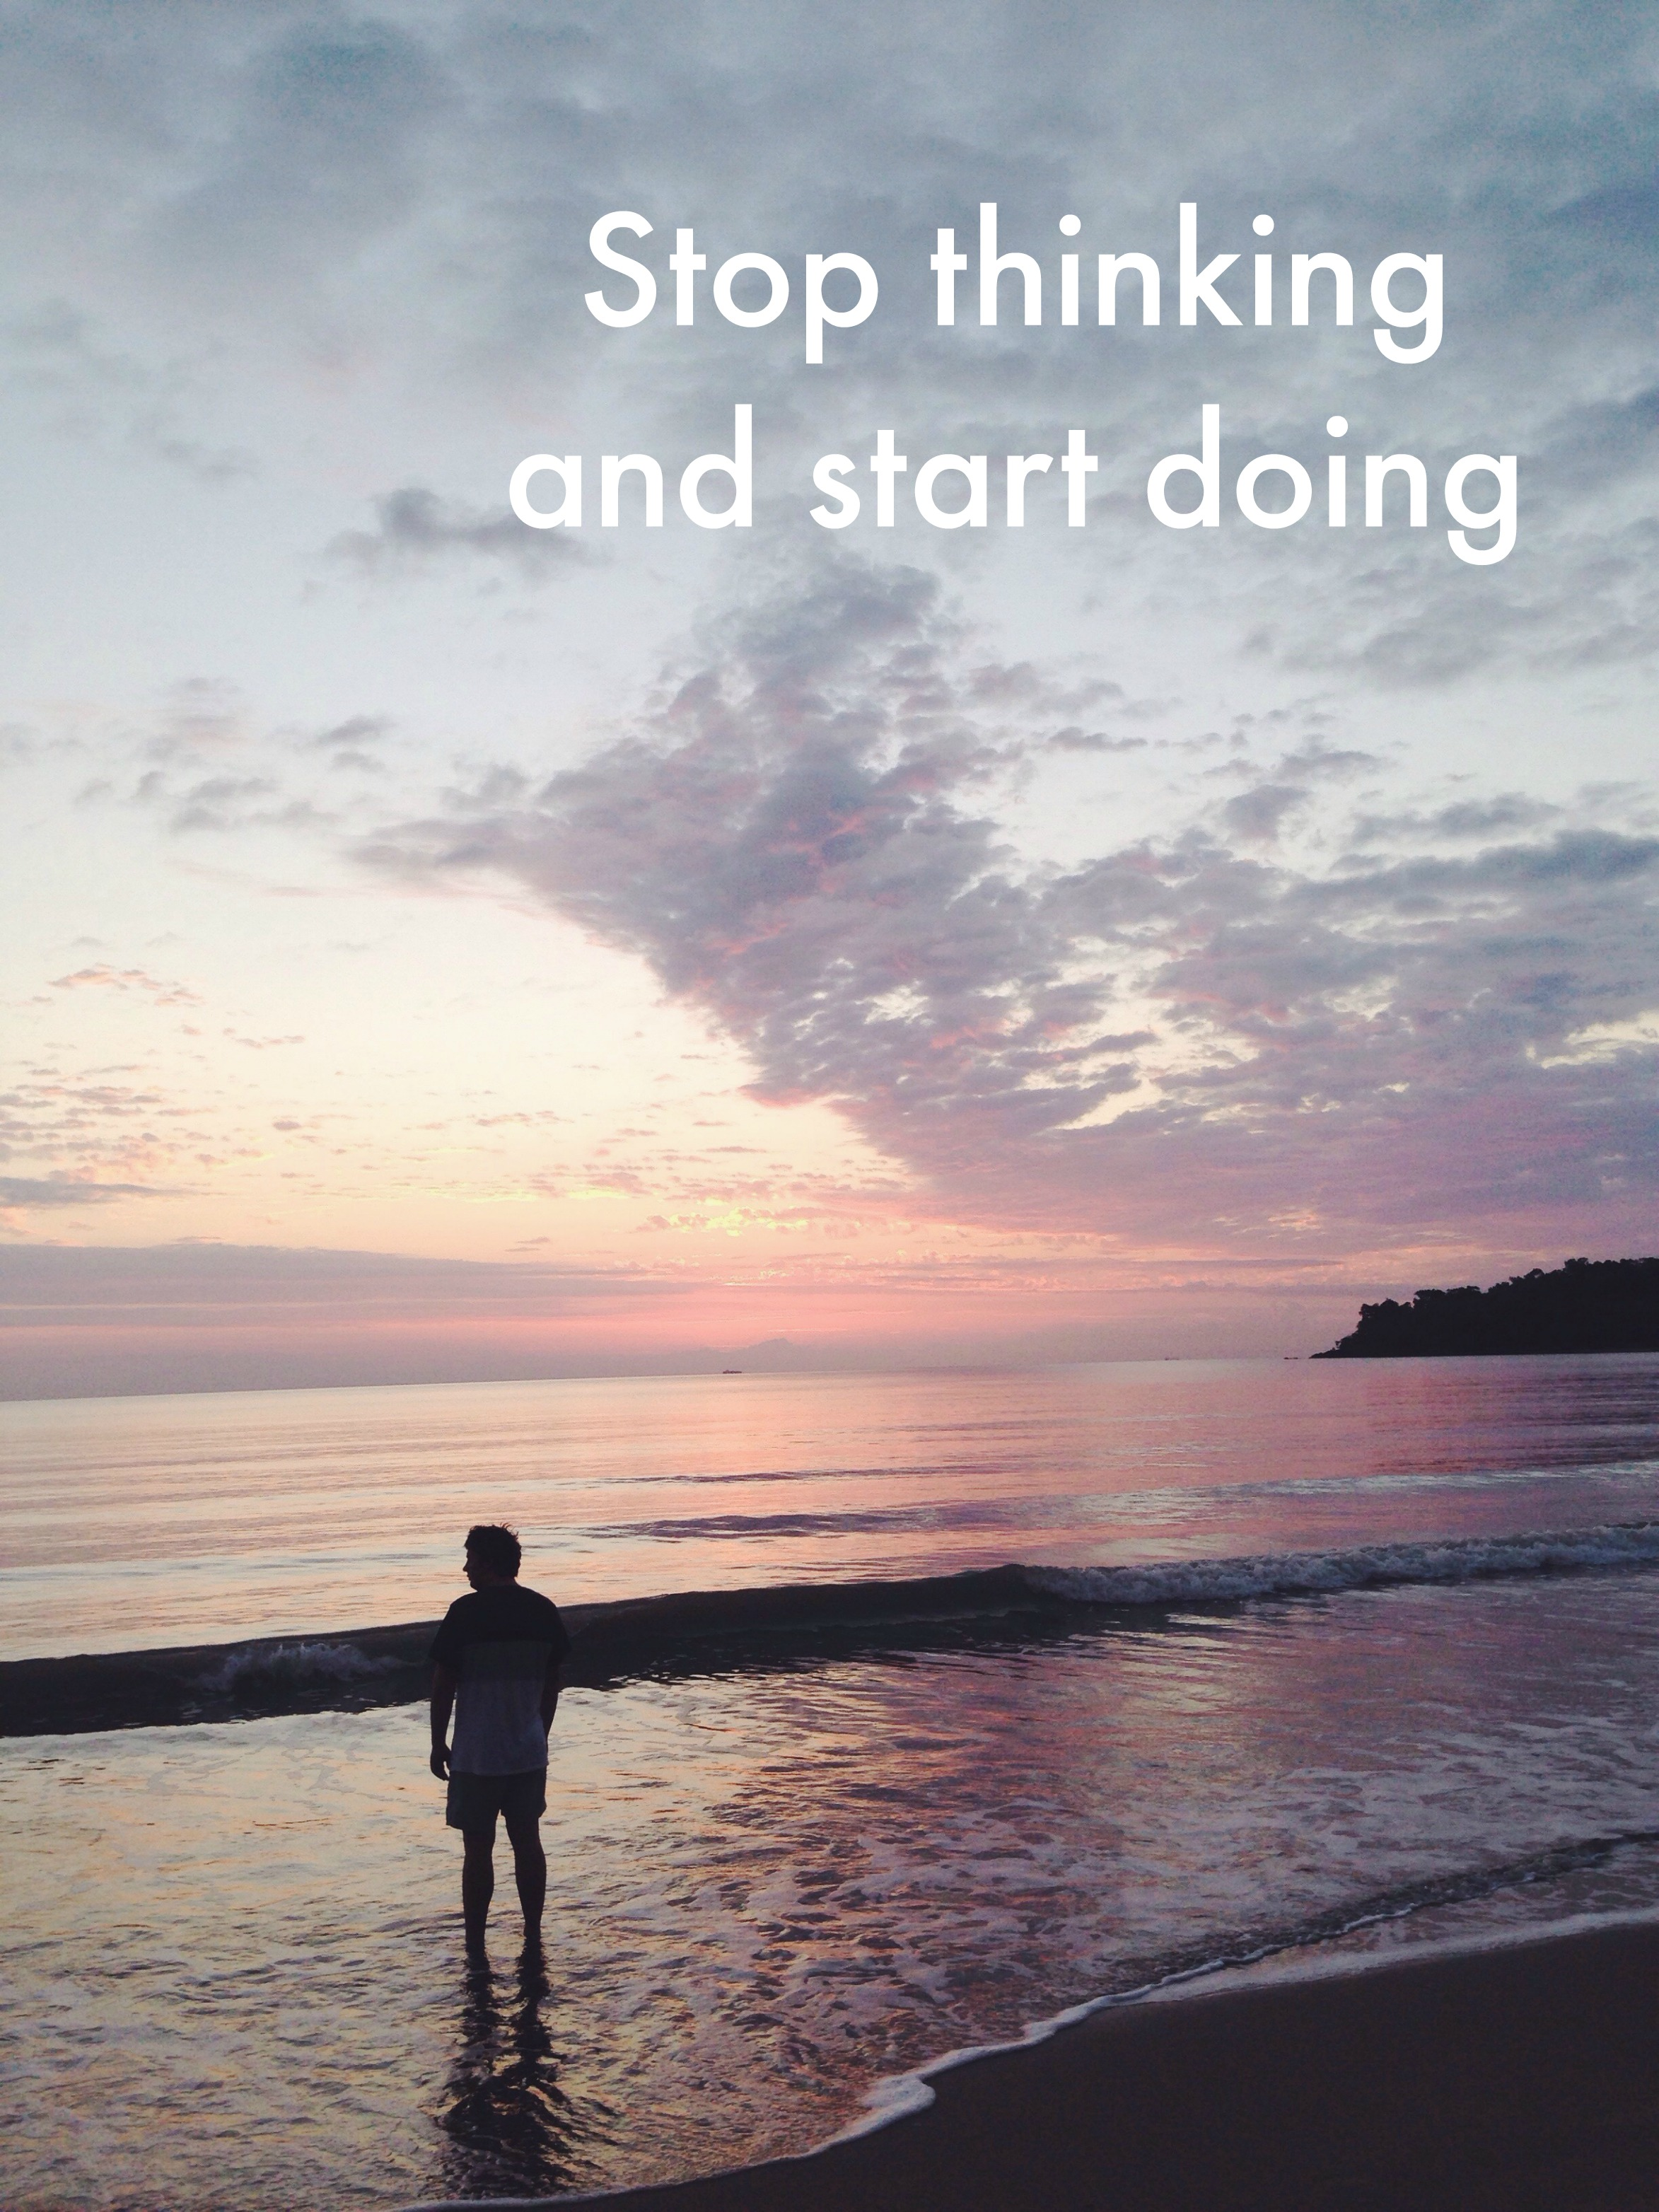 Stop (over)thinking. Start doing.